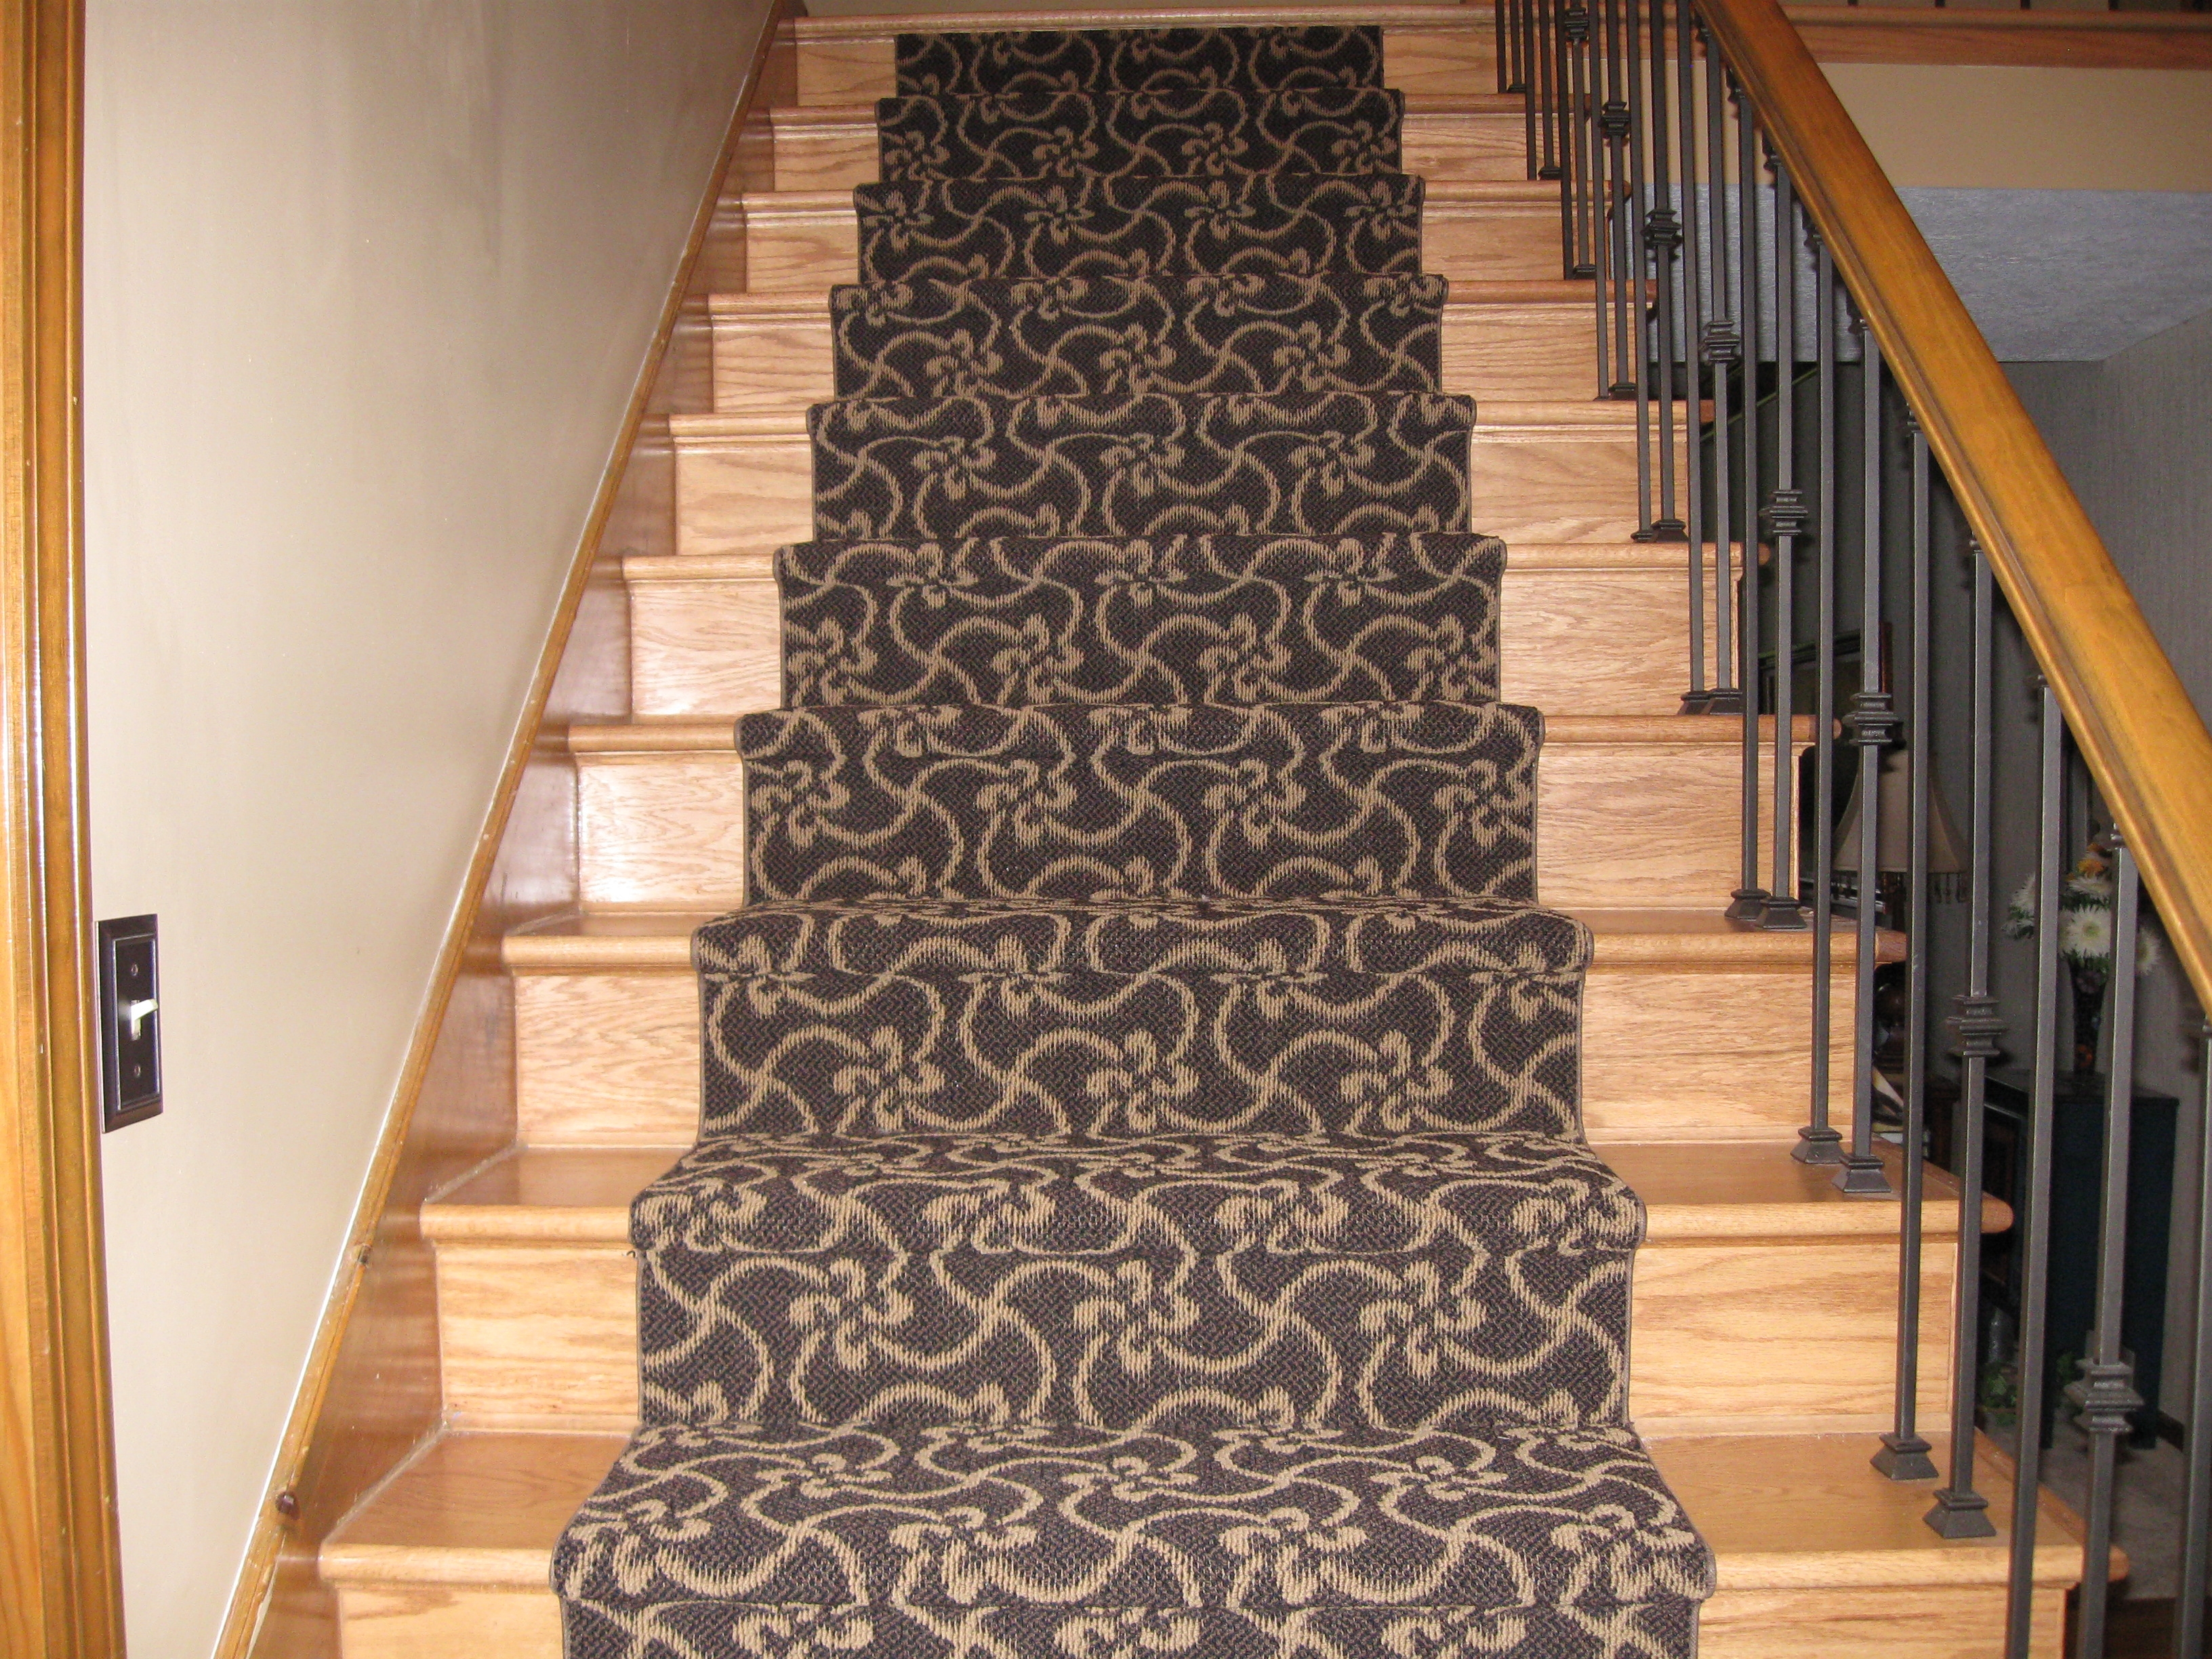 Stairway Rugs Roselawnlutheran In Stair Treads And Matching Rugs (View 13 of 15)